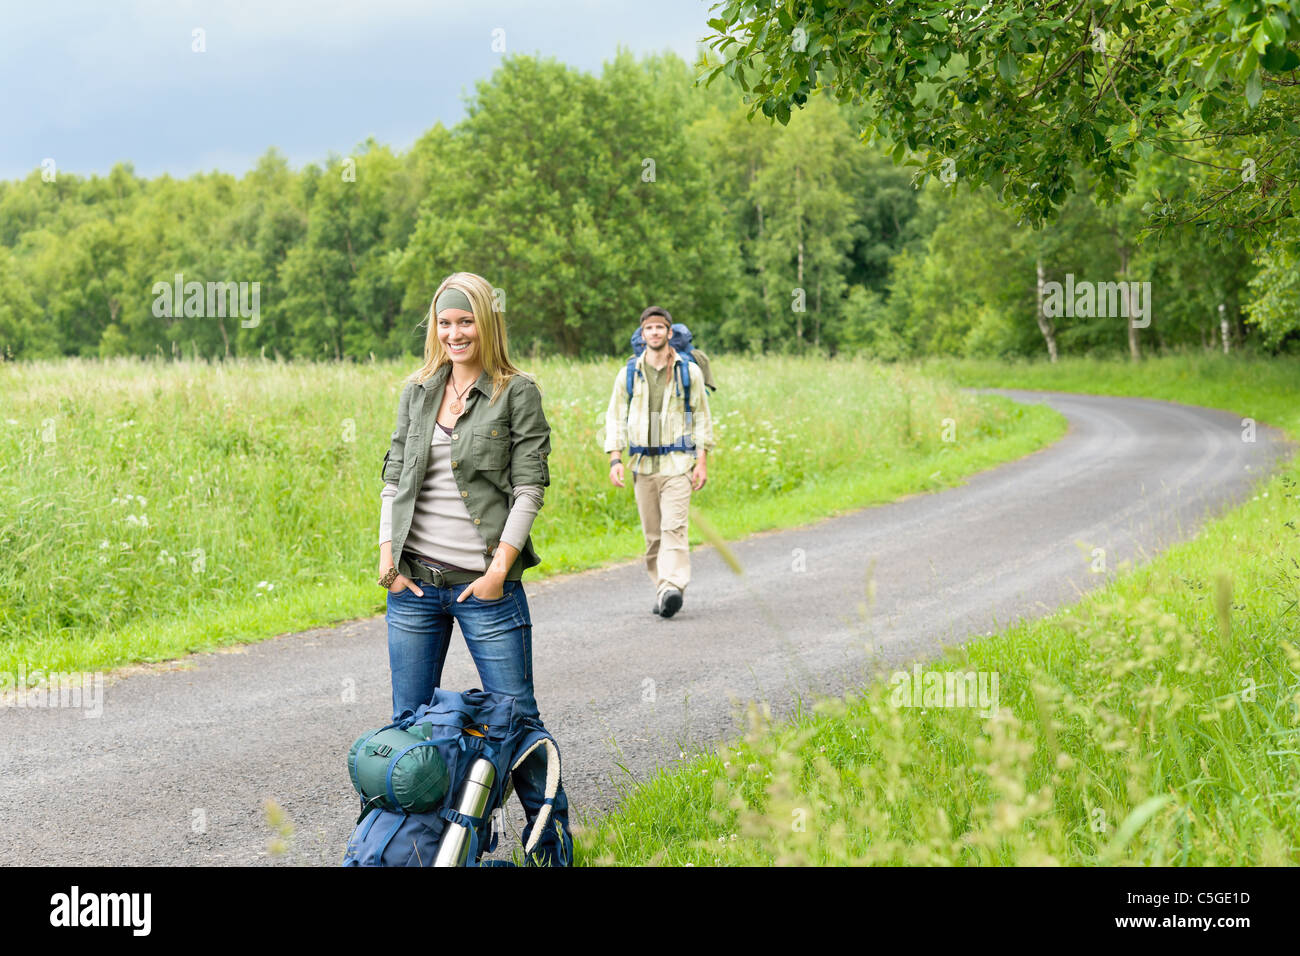 Hiking young couple backpack tramping on asphalt road countryside - Stock Image